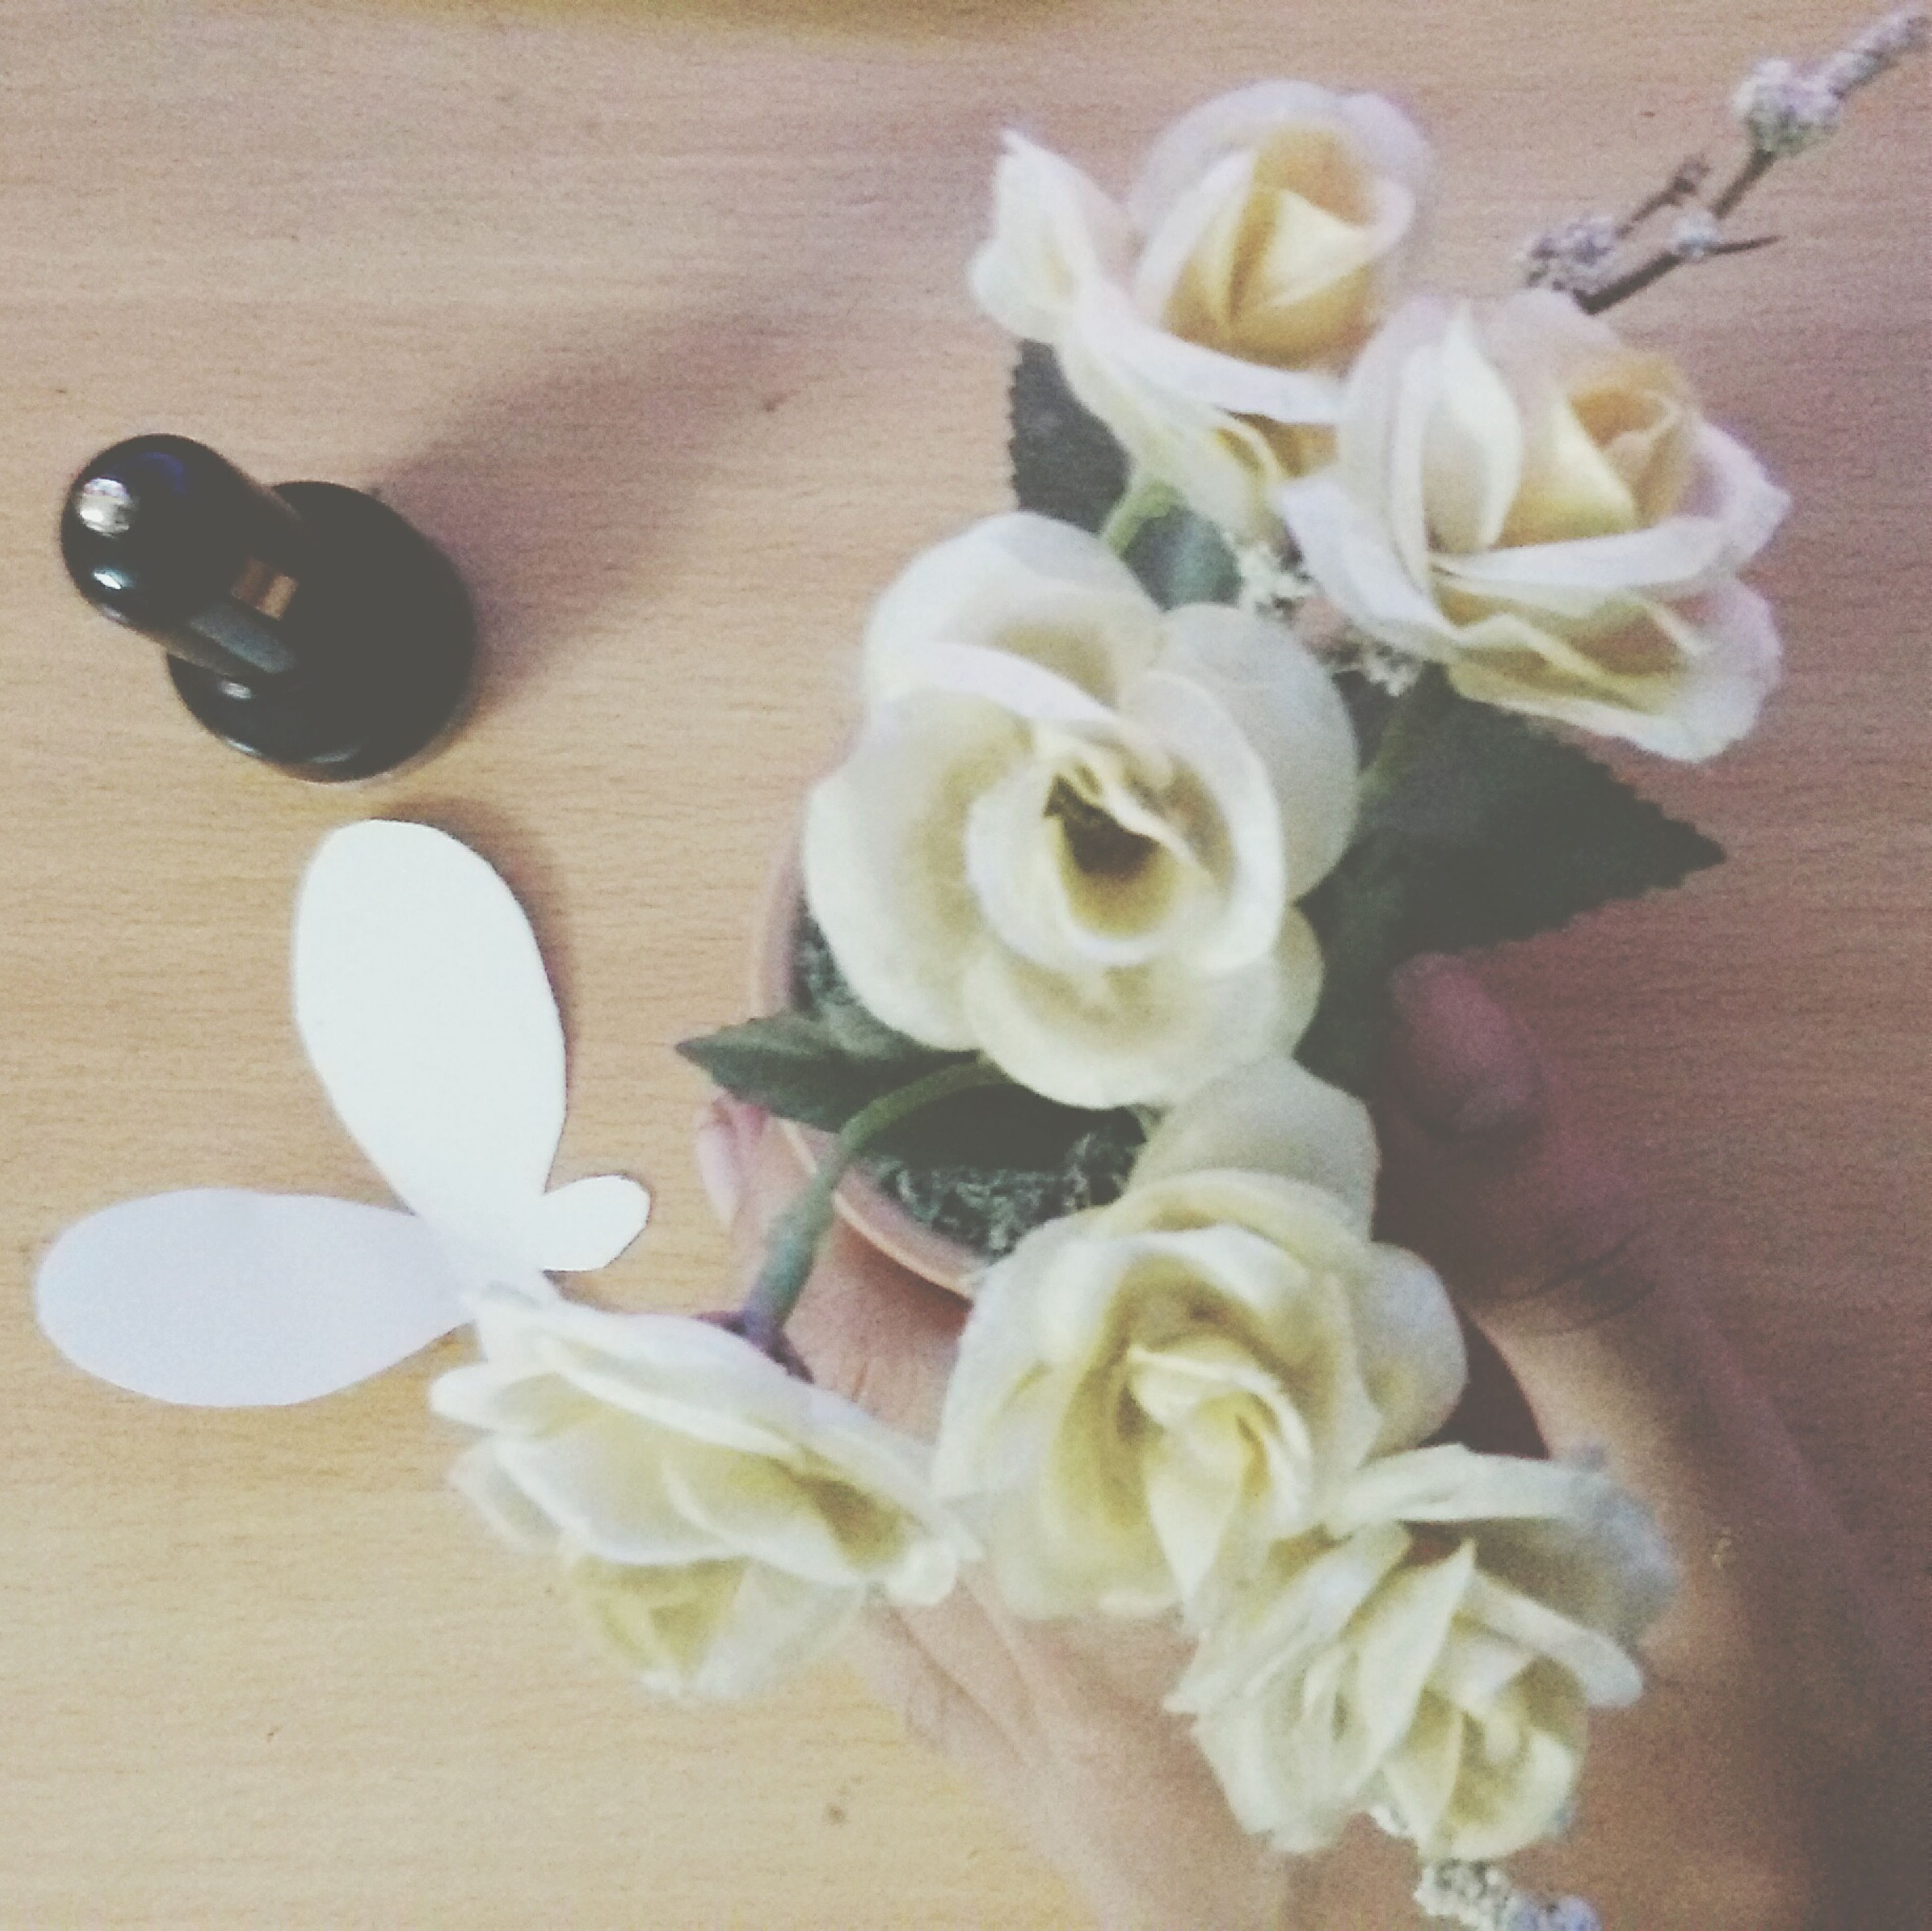 indoors, flower, table, high angle view, still life, freshness, vase, petal, close-up, white color, bouquet, fragility, decoration, rose - flower, flower head, directly above, variation, no people, home interior, flower arrangement